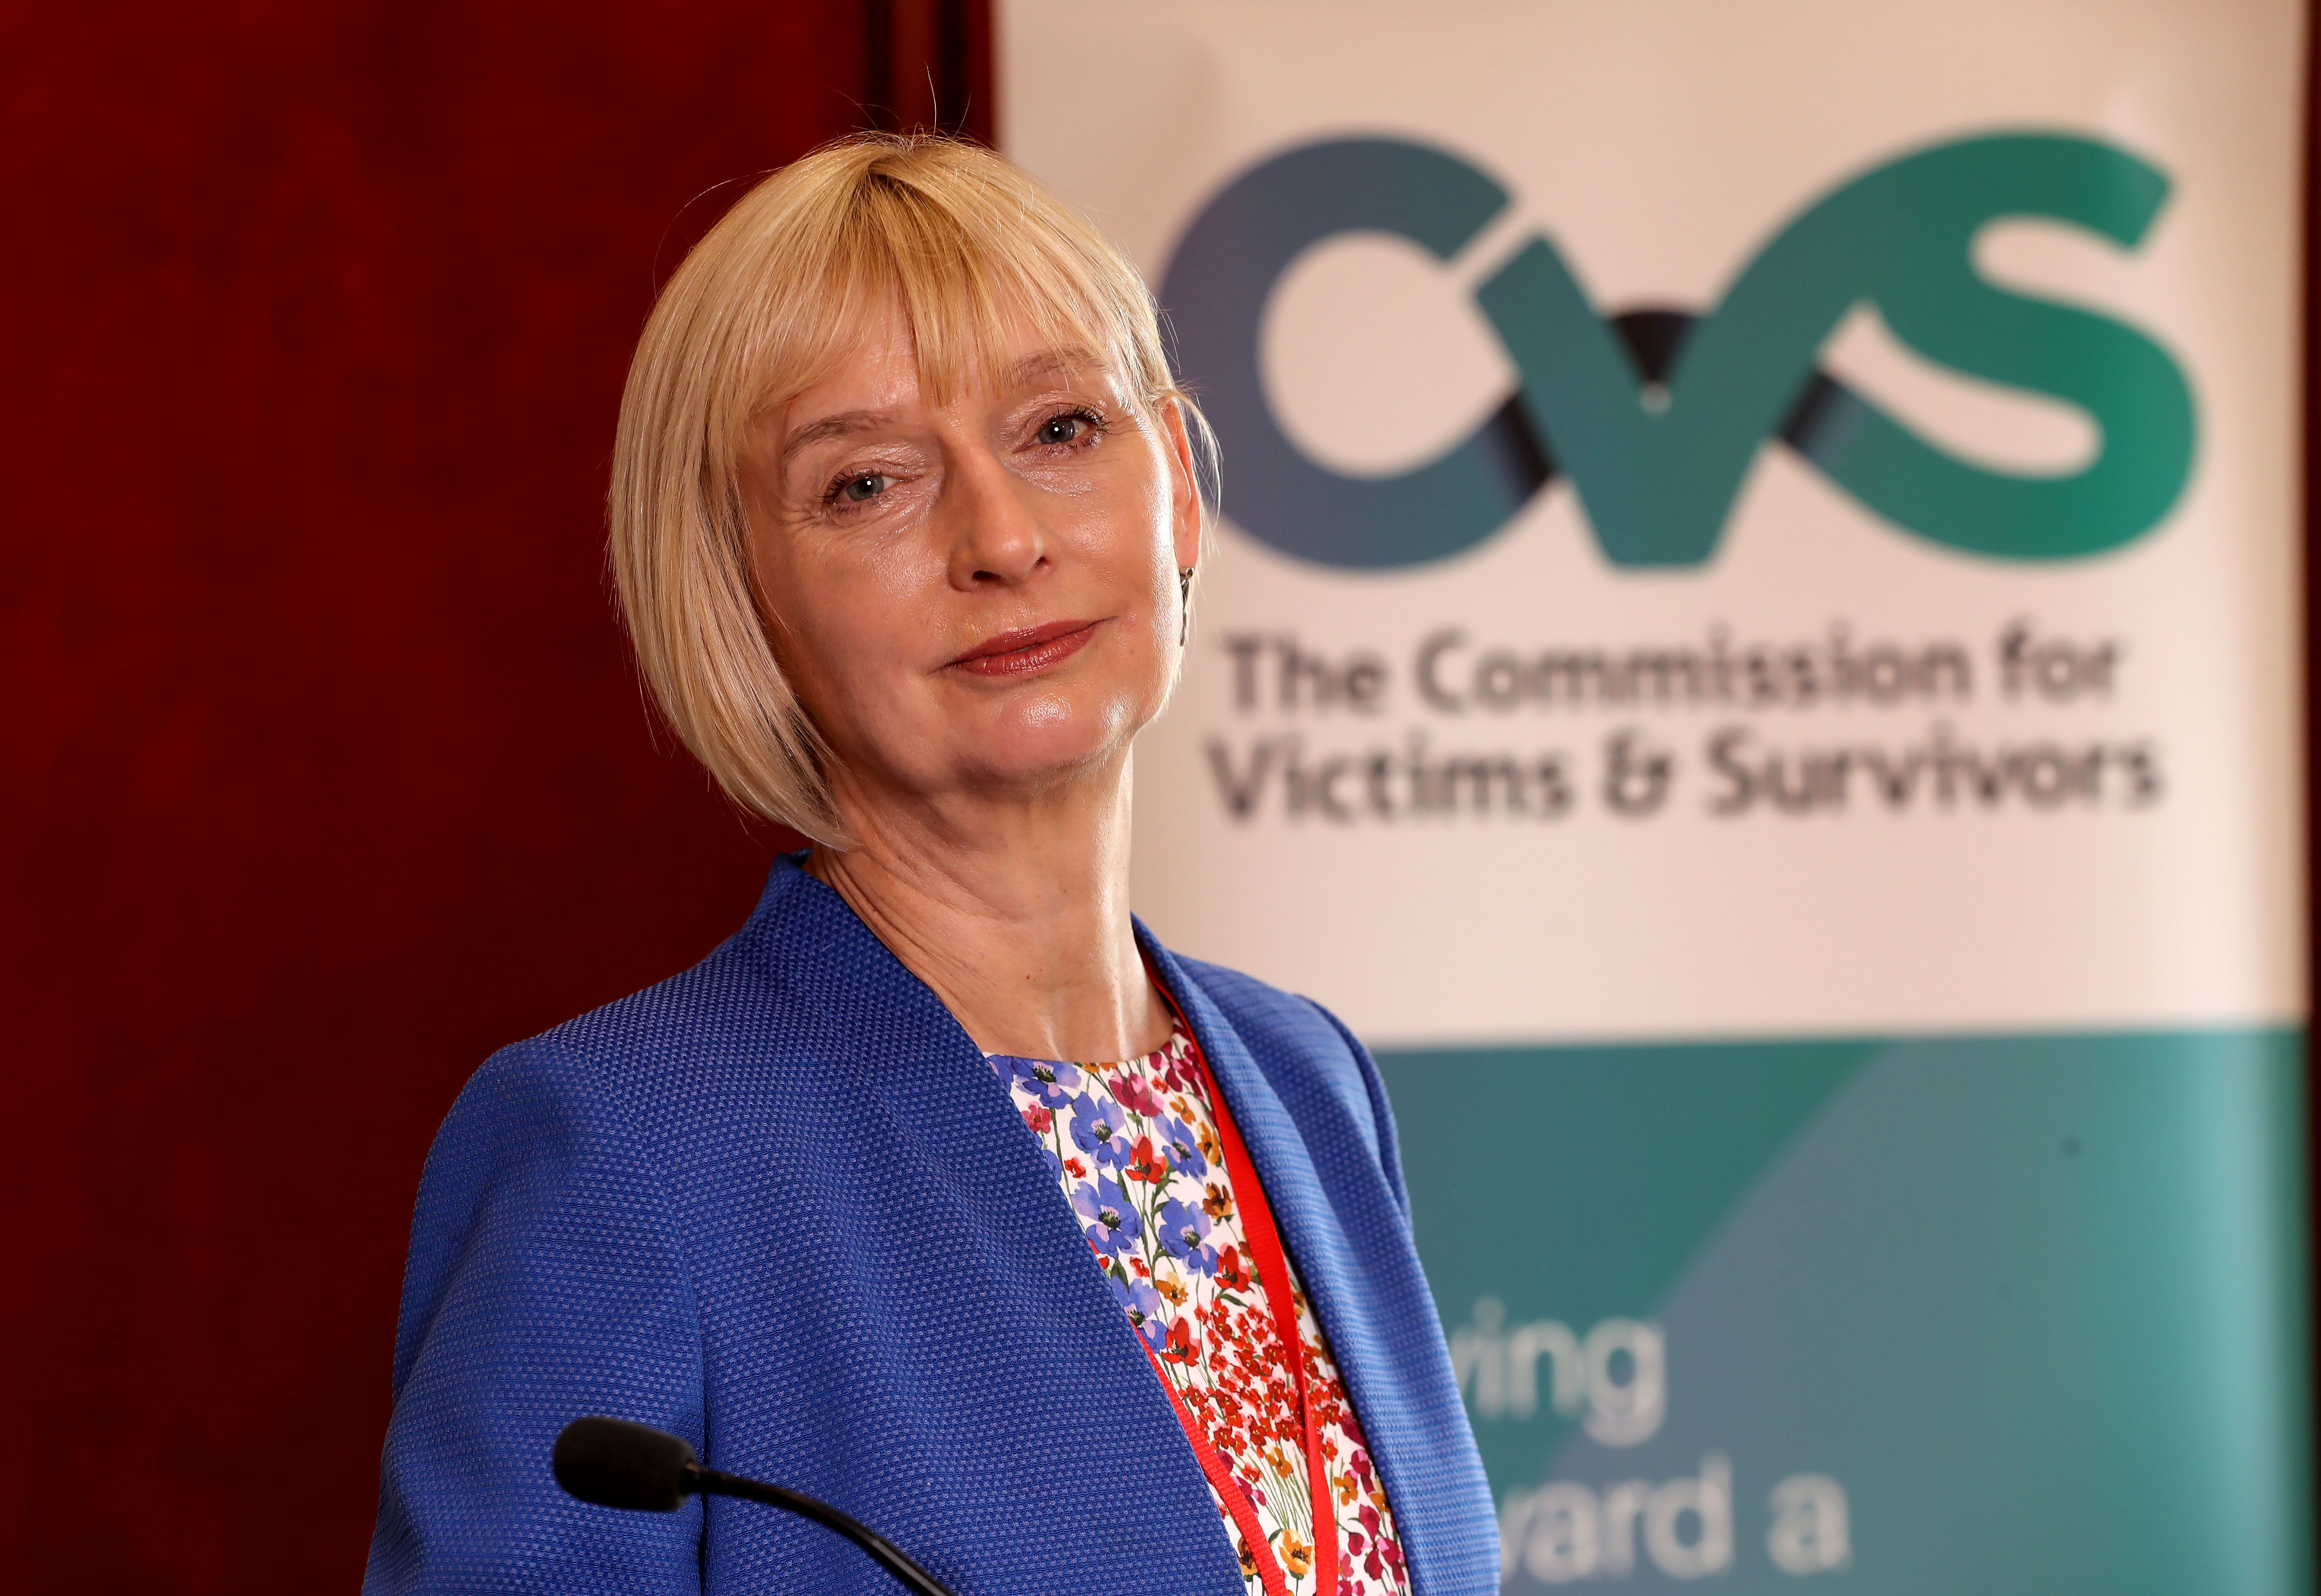 DEALING WITH THE PAST: Victims and Survivors Commissioner Judith Thompson